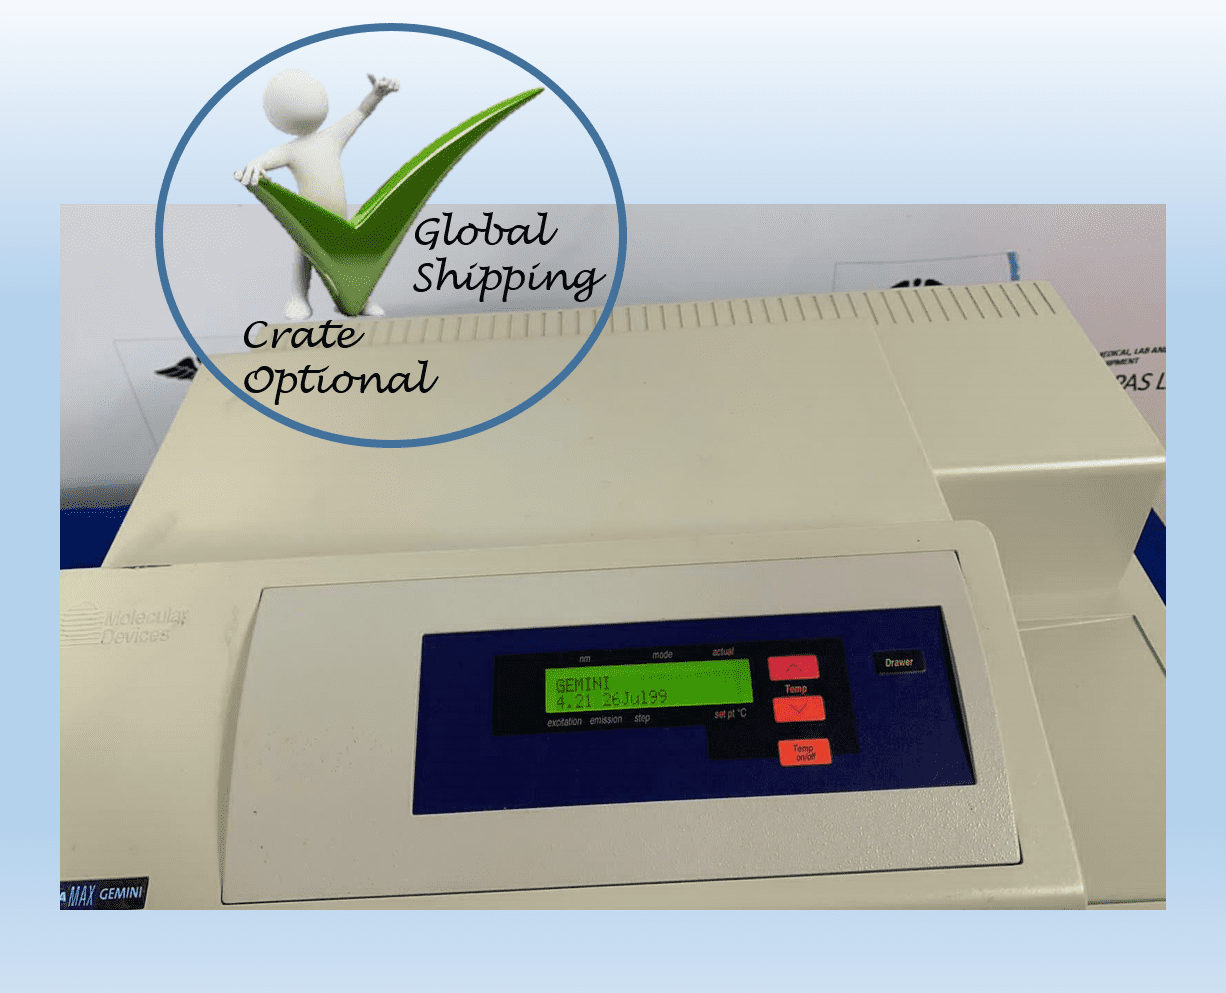 Molecular Devices Spectro Max Gemini Microplate Spectrophotometer.